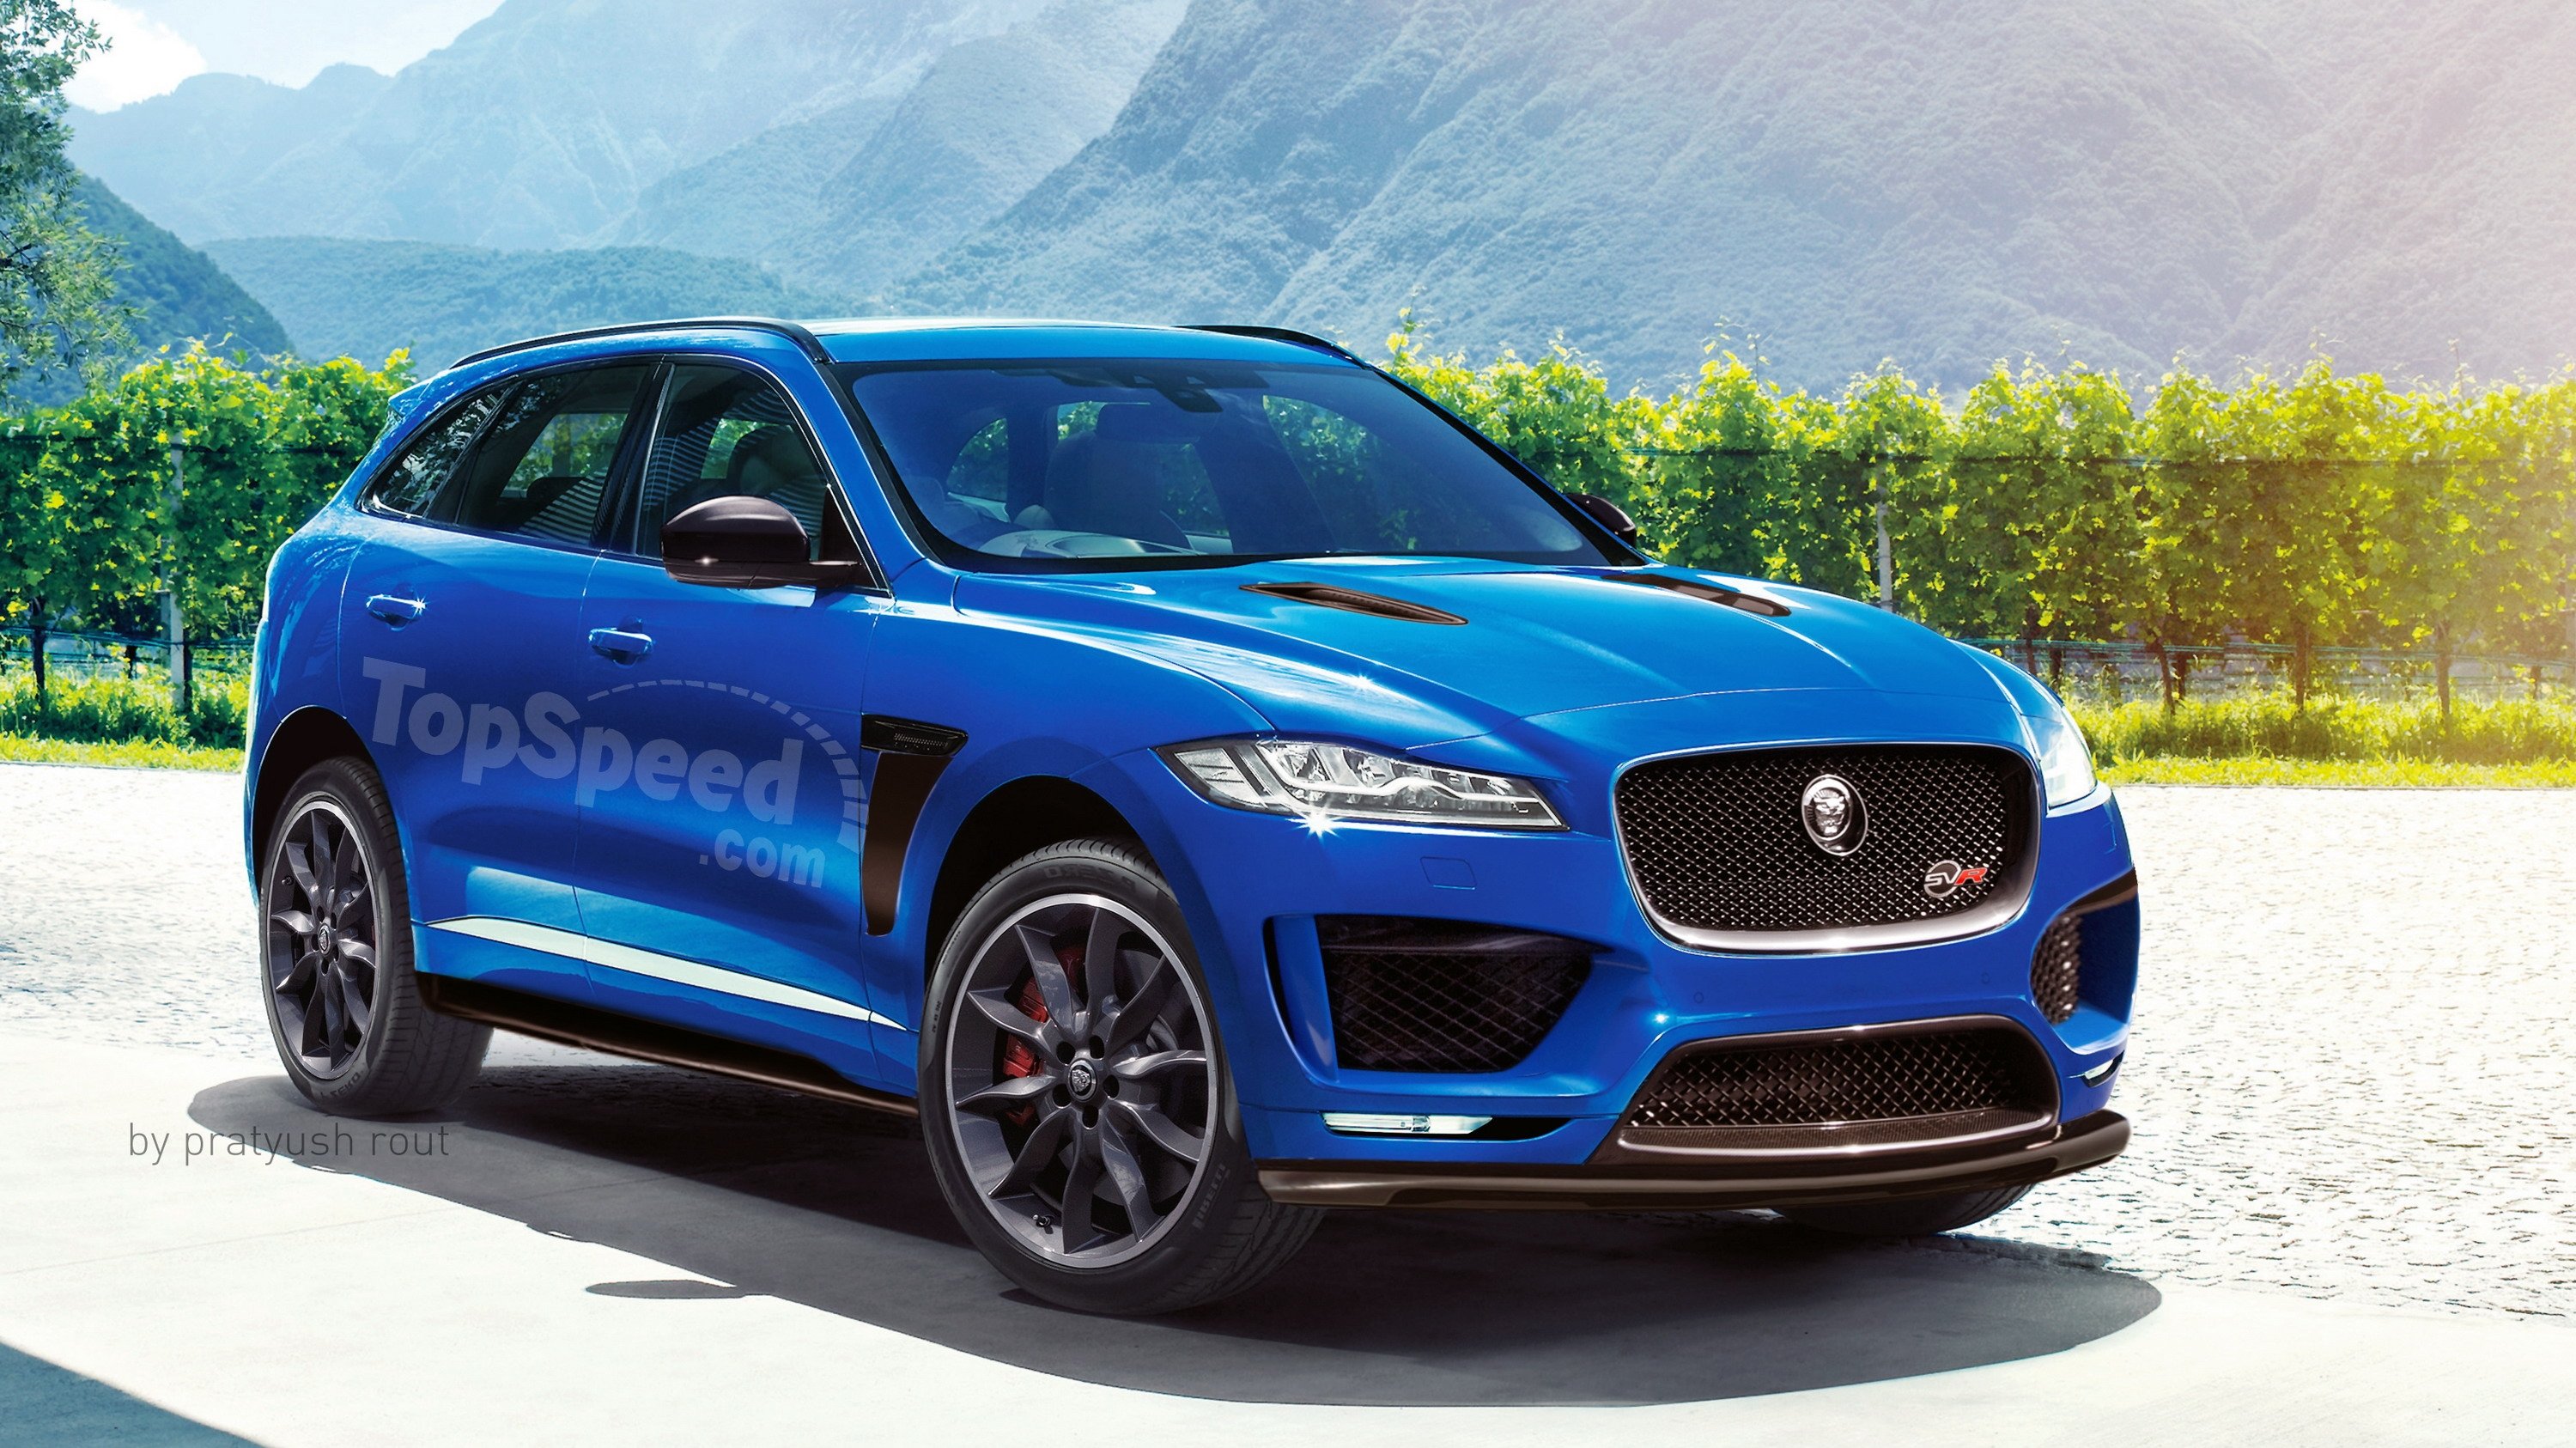 book guide crossover all jaguar blue buyer pace the f latest compact new s luxury car suv news kelley